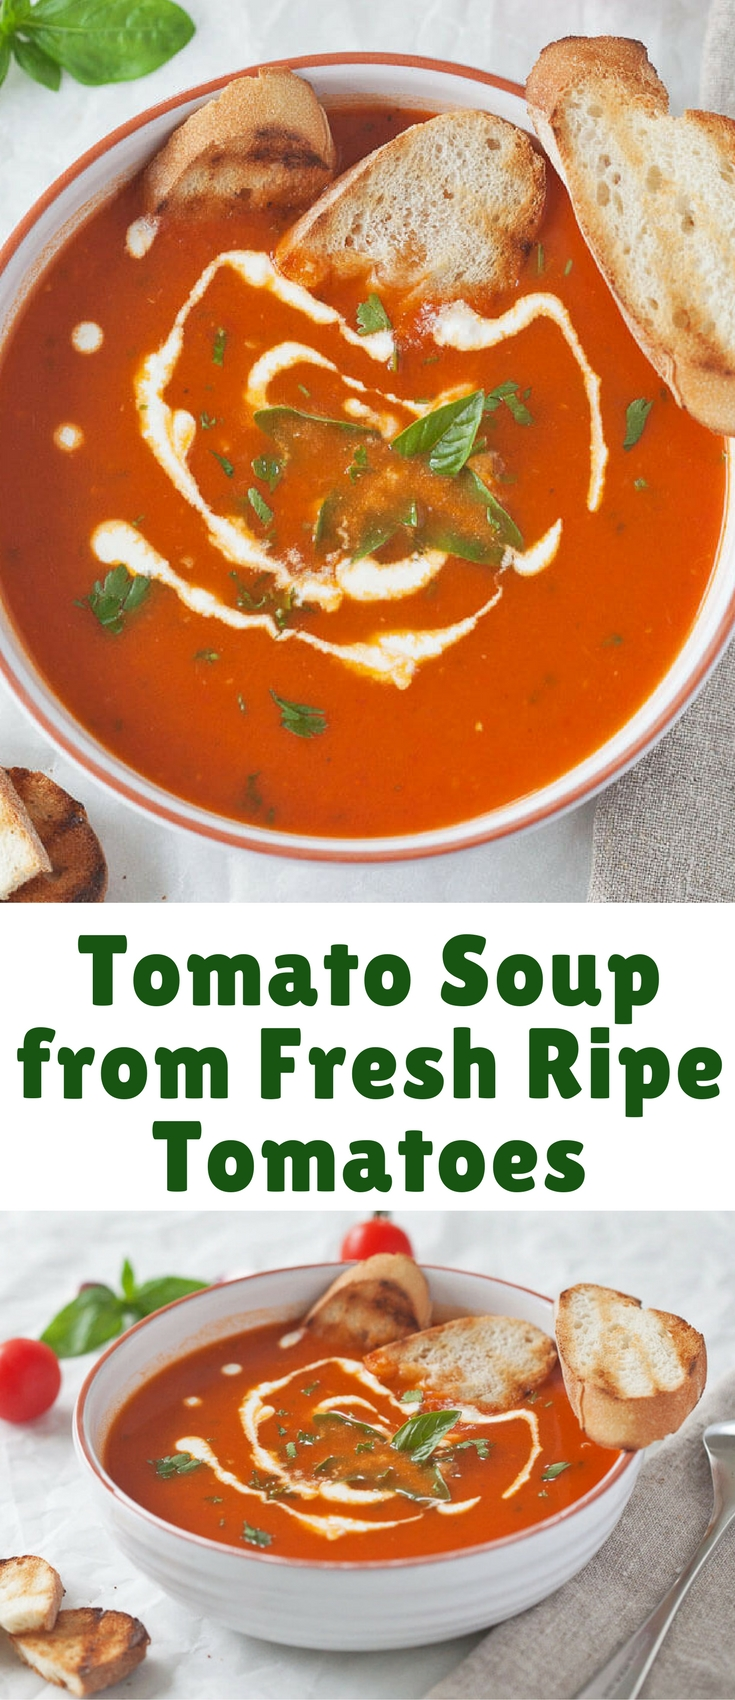 Simply amazing Tomato Soup from Fresh Ripe Tomatoes is delicious. Just 15 minutes and a couple of ingredients to make it, quick & easy!